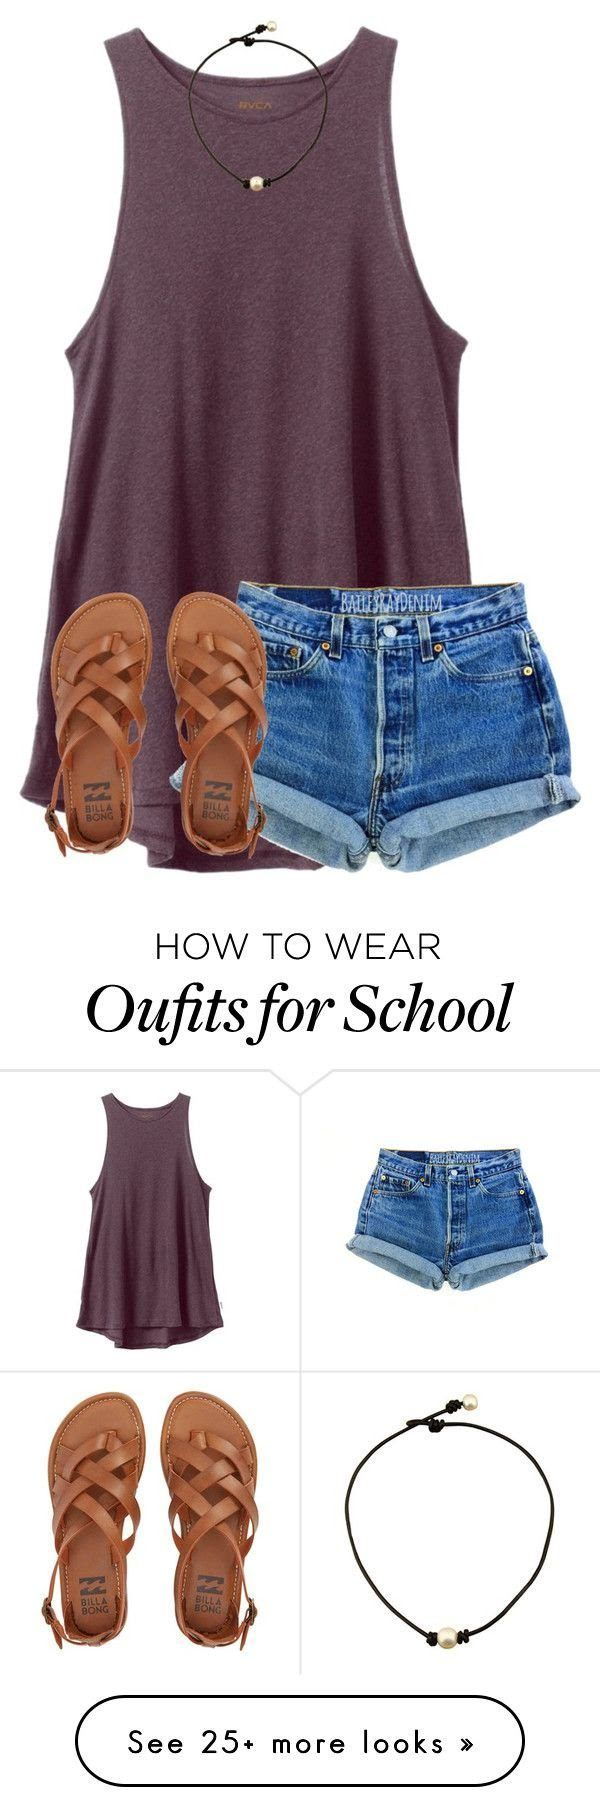 10 cute summer school outfits you should try 1 – 10 cute summer school outfits you should try